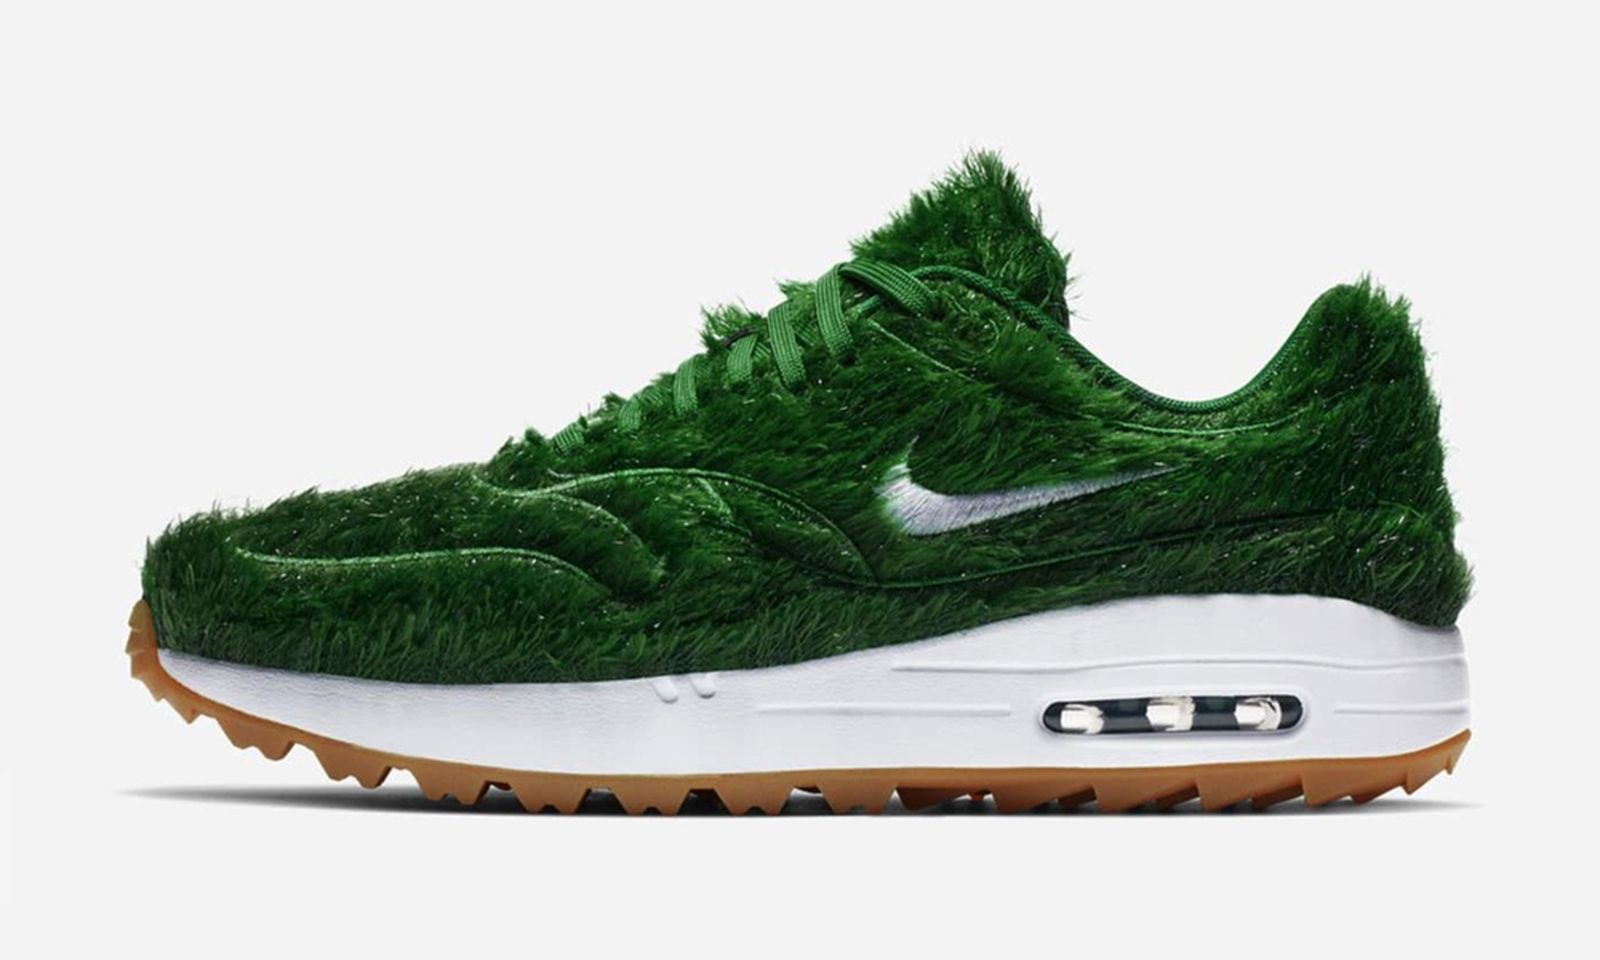 nike air max 1 golf grass release date price comments Fear Of God Jerry Lorenzo OFF-WHITE c/o Virgil Abloh